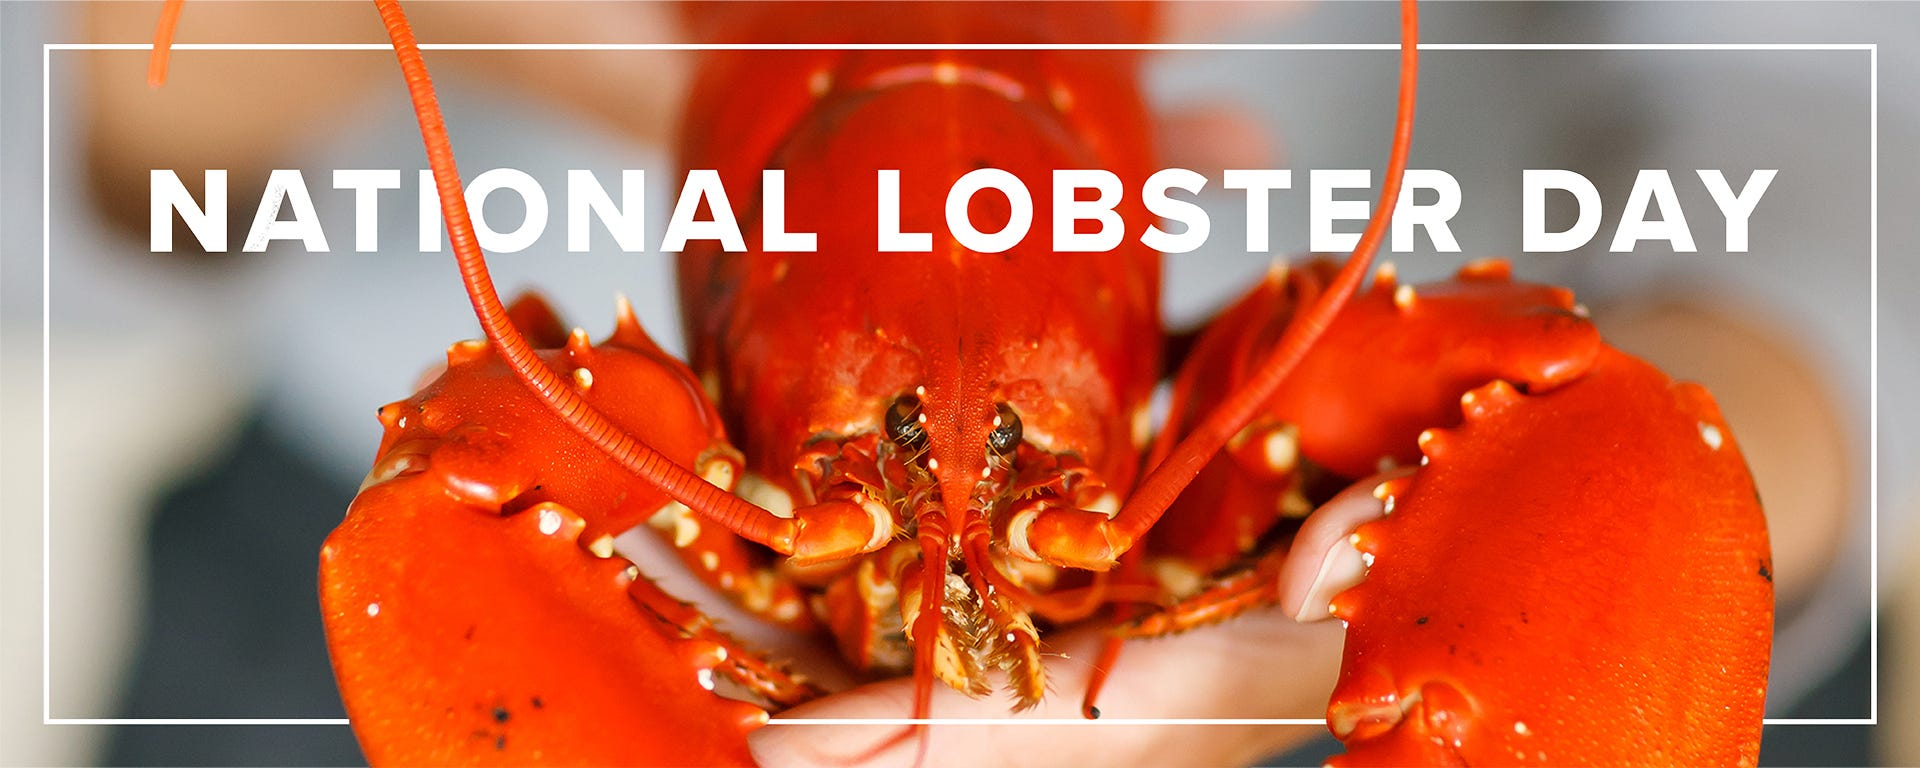 national lobster day landing page feature